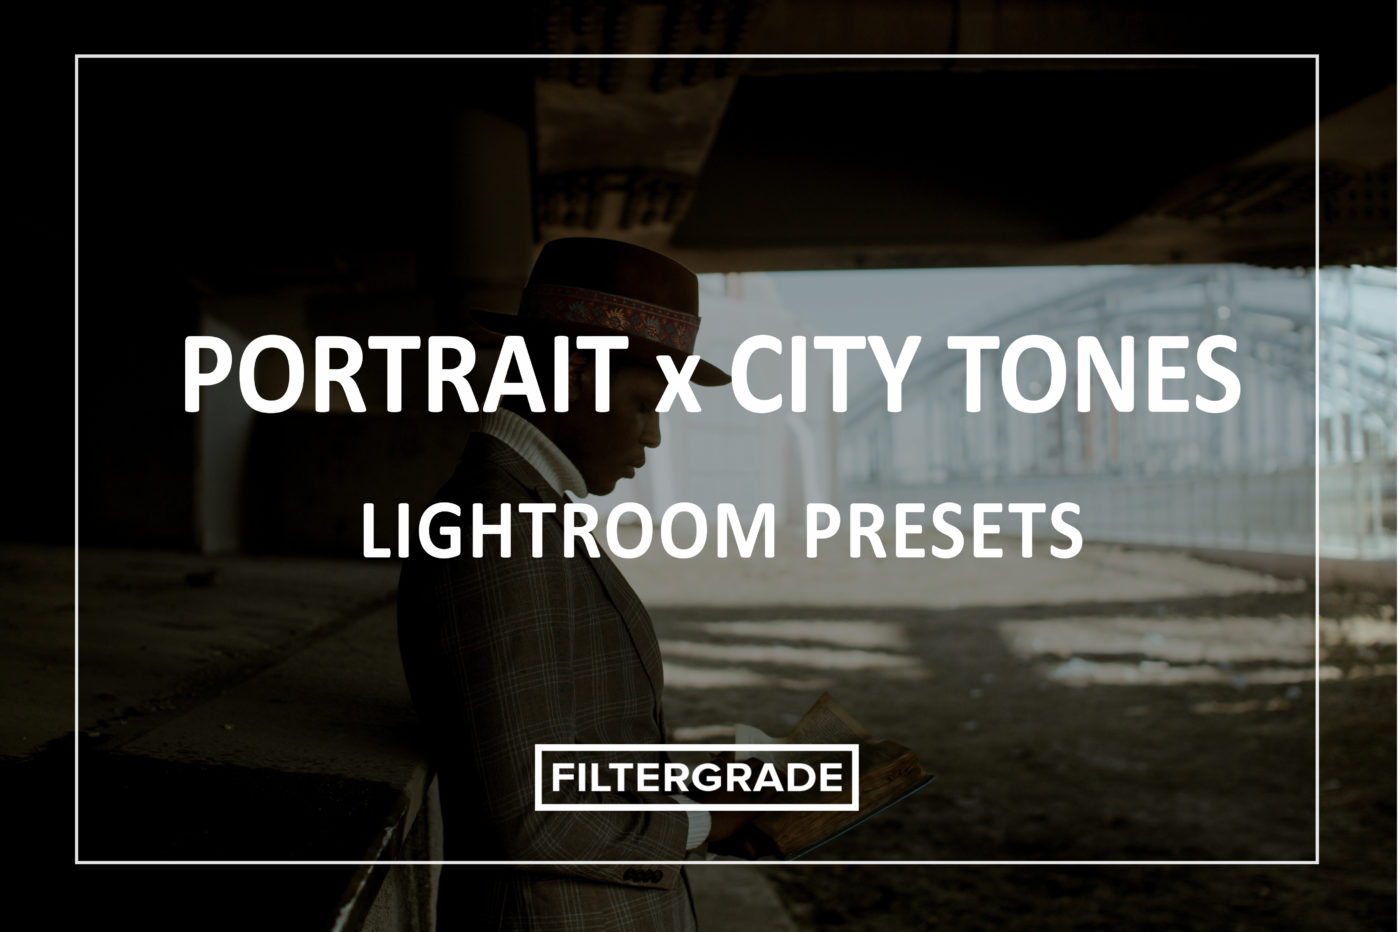 Portrait and City Tones Lightroom Presets by @ph_max